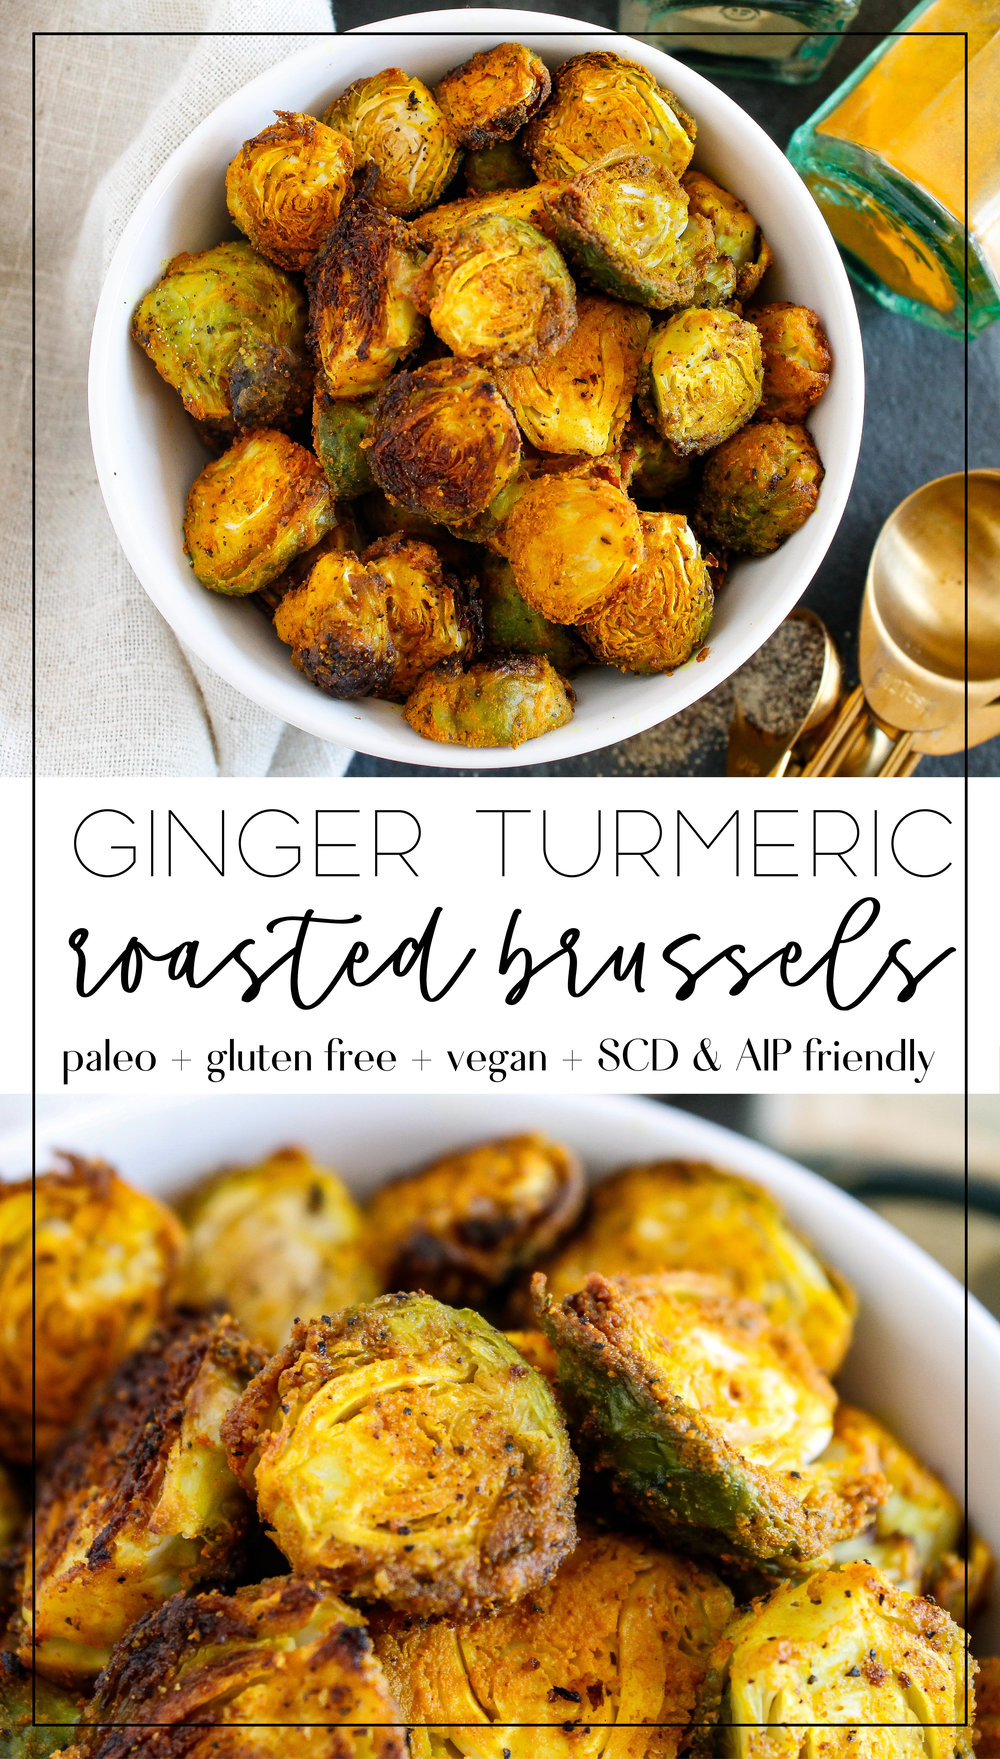 turmeric roasted brussels sprouts